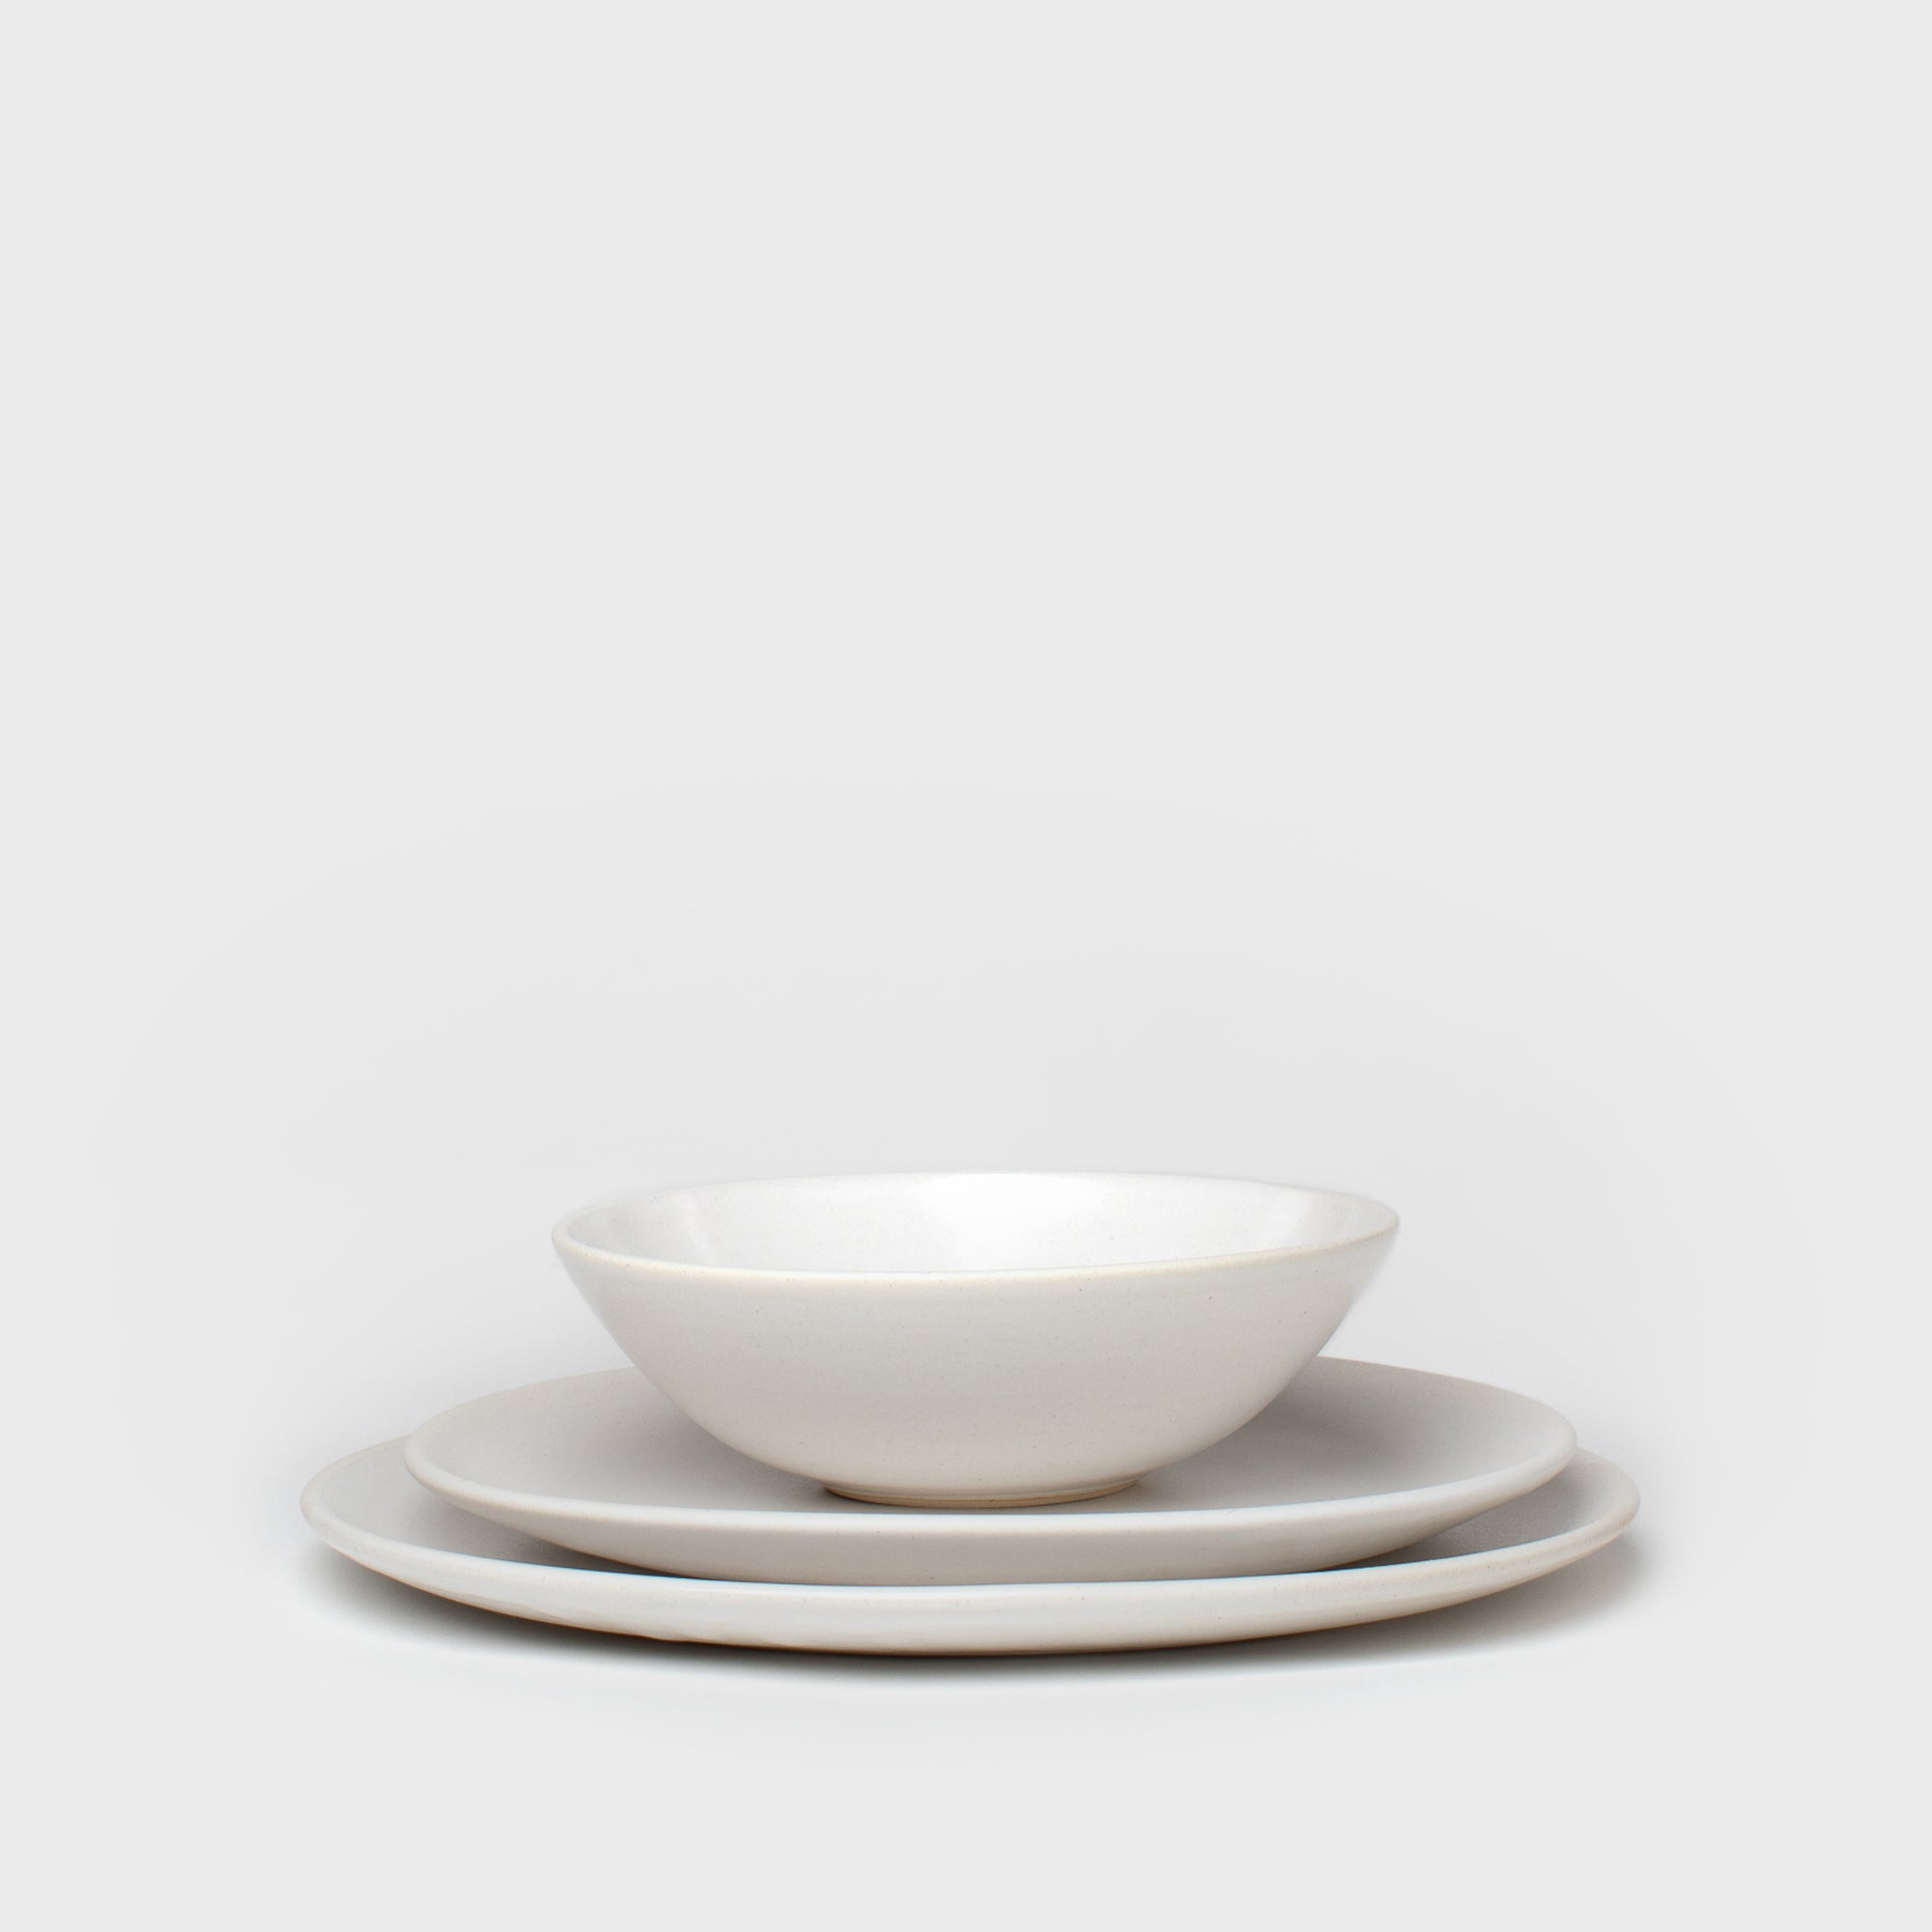 Dinner Plate in White - Kitchen & Dining – Shoppe Amber Interiors